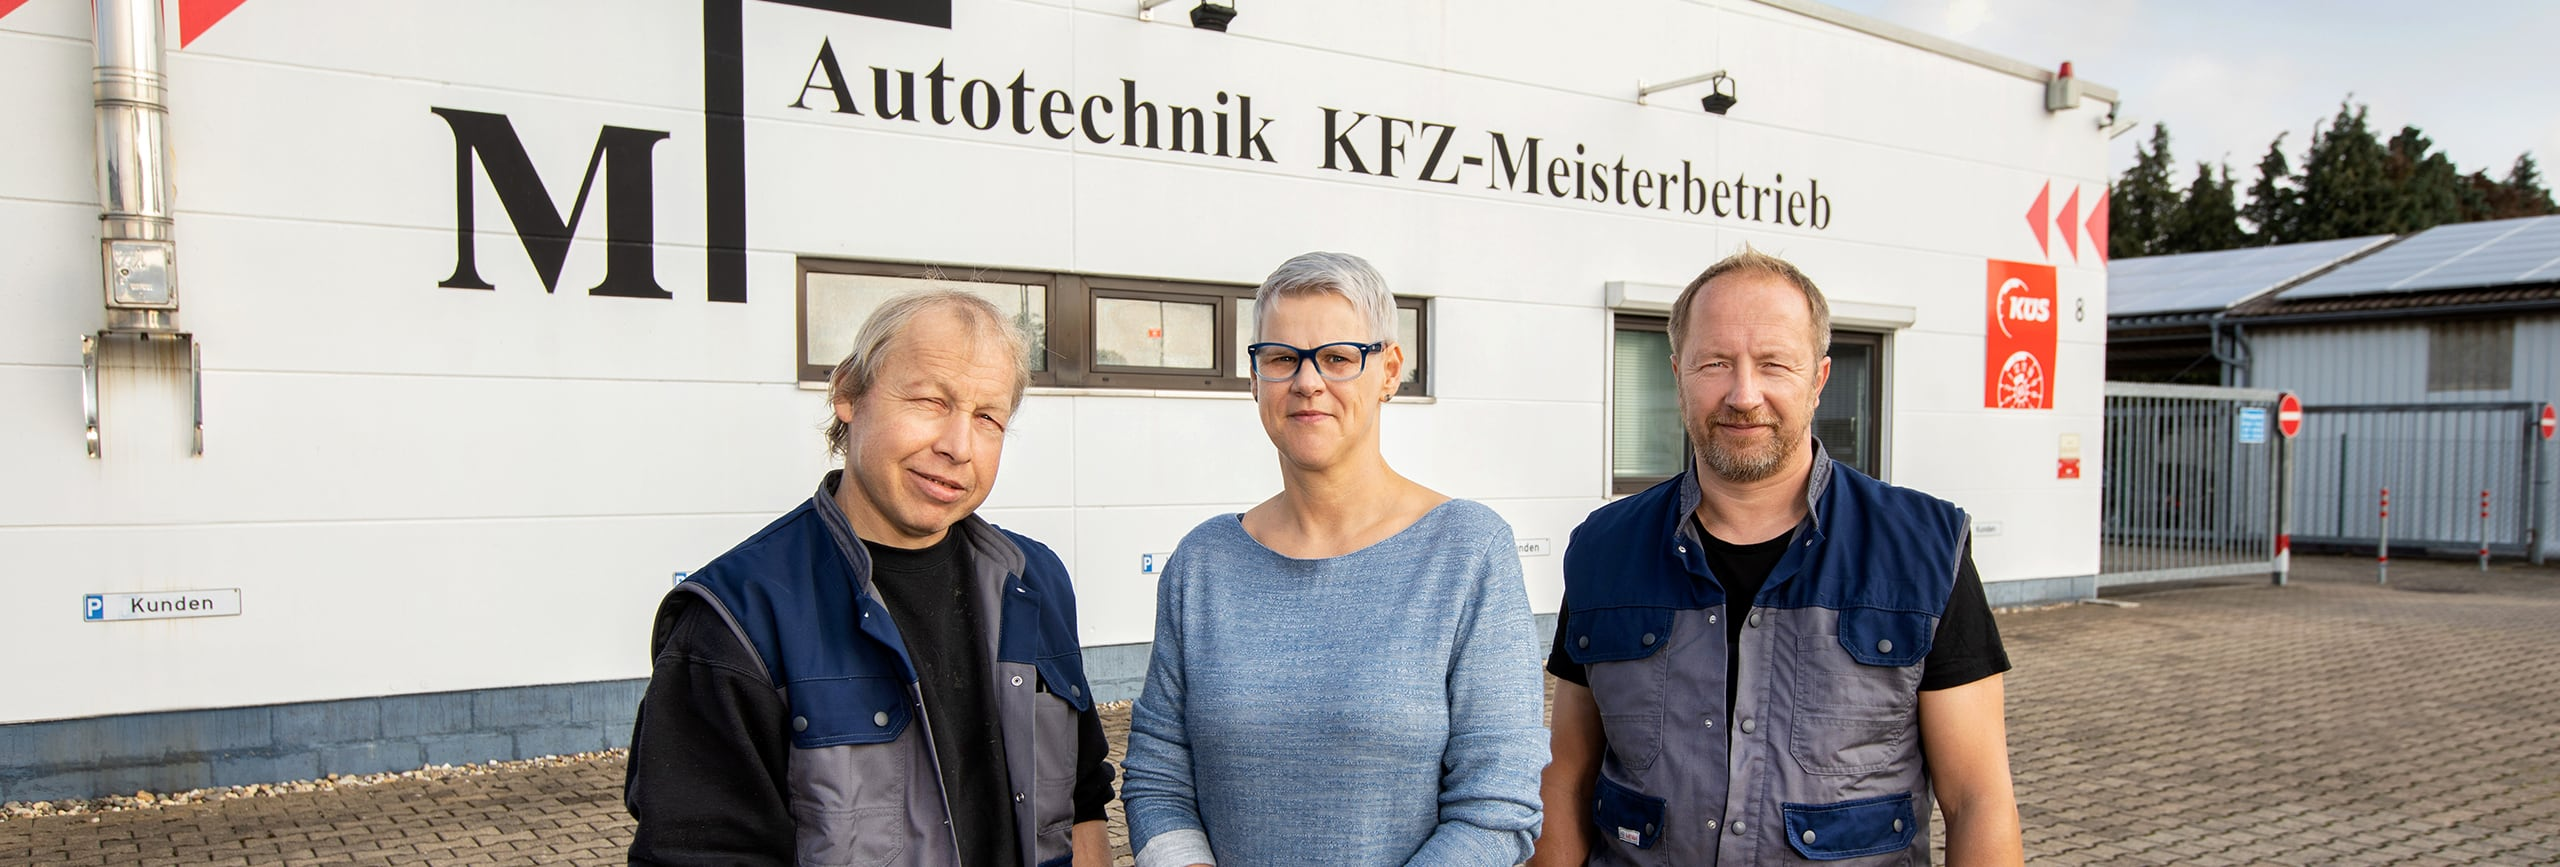 mt autotechnik inspektion